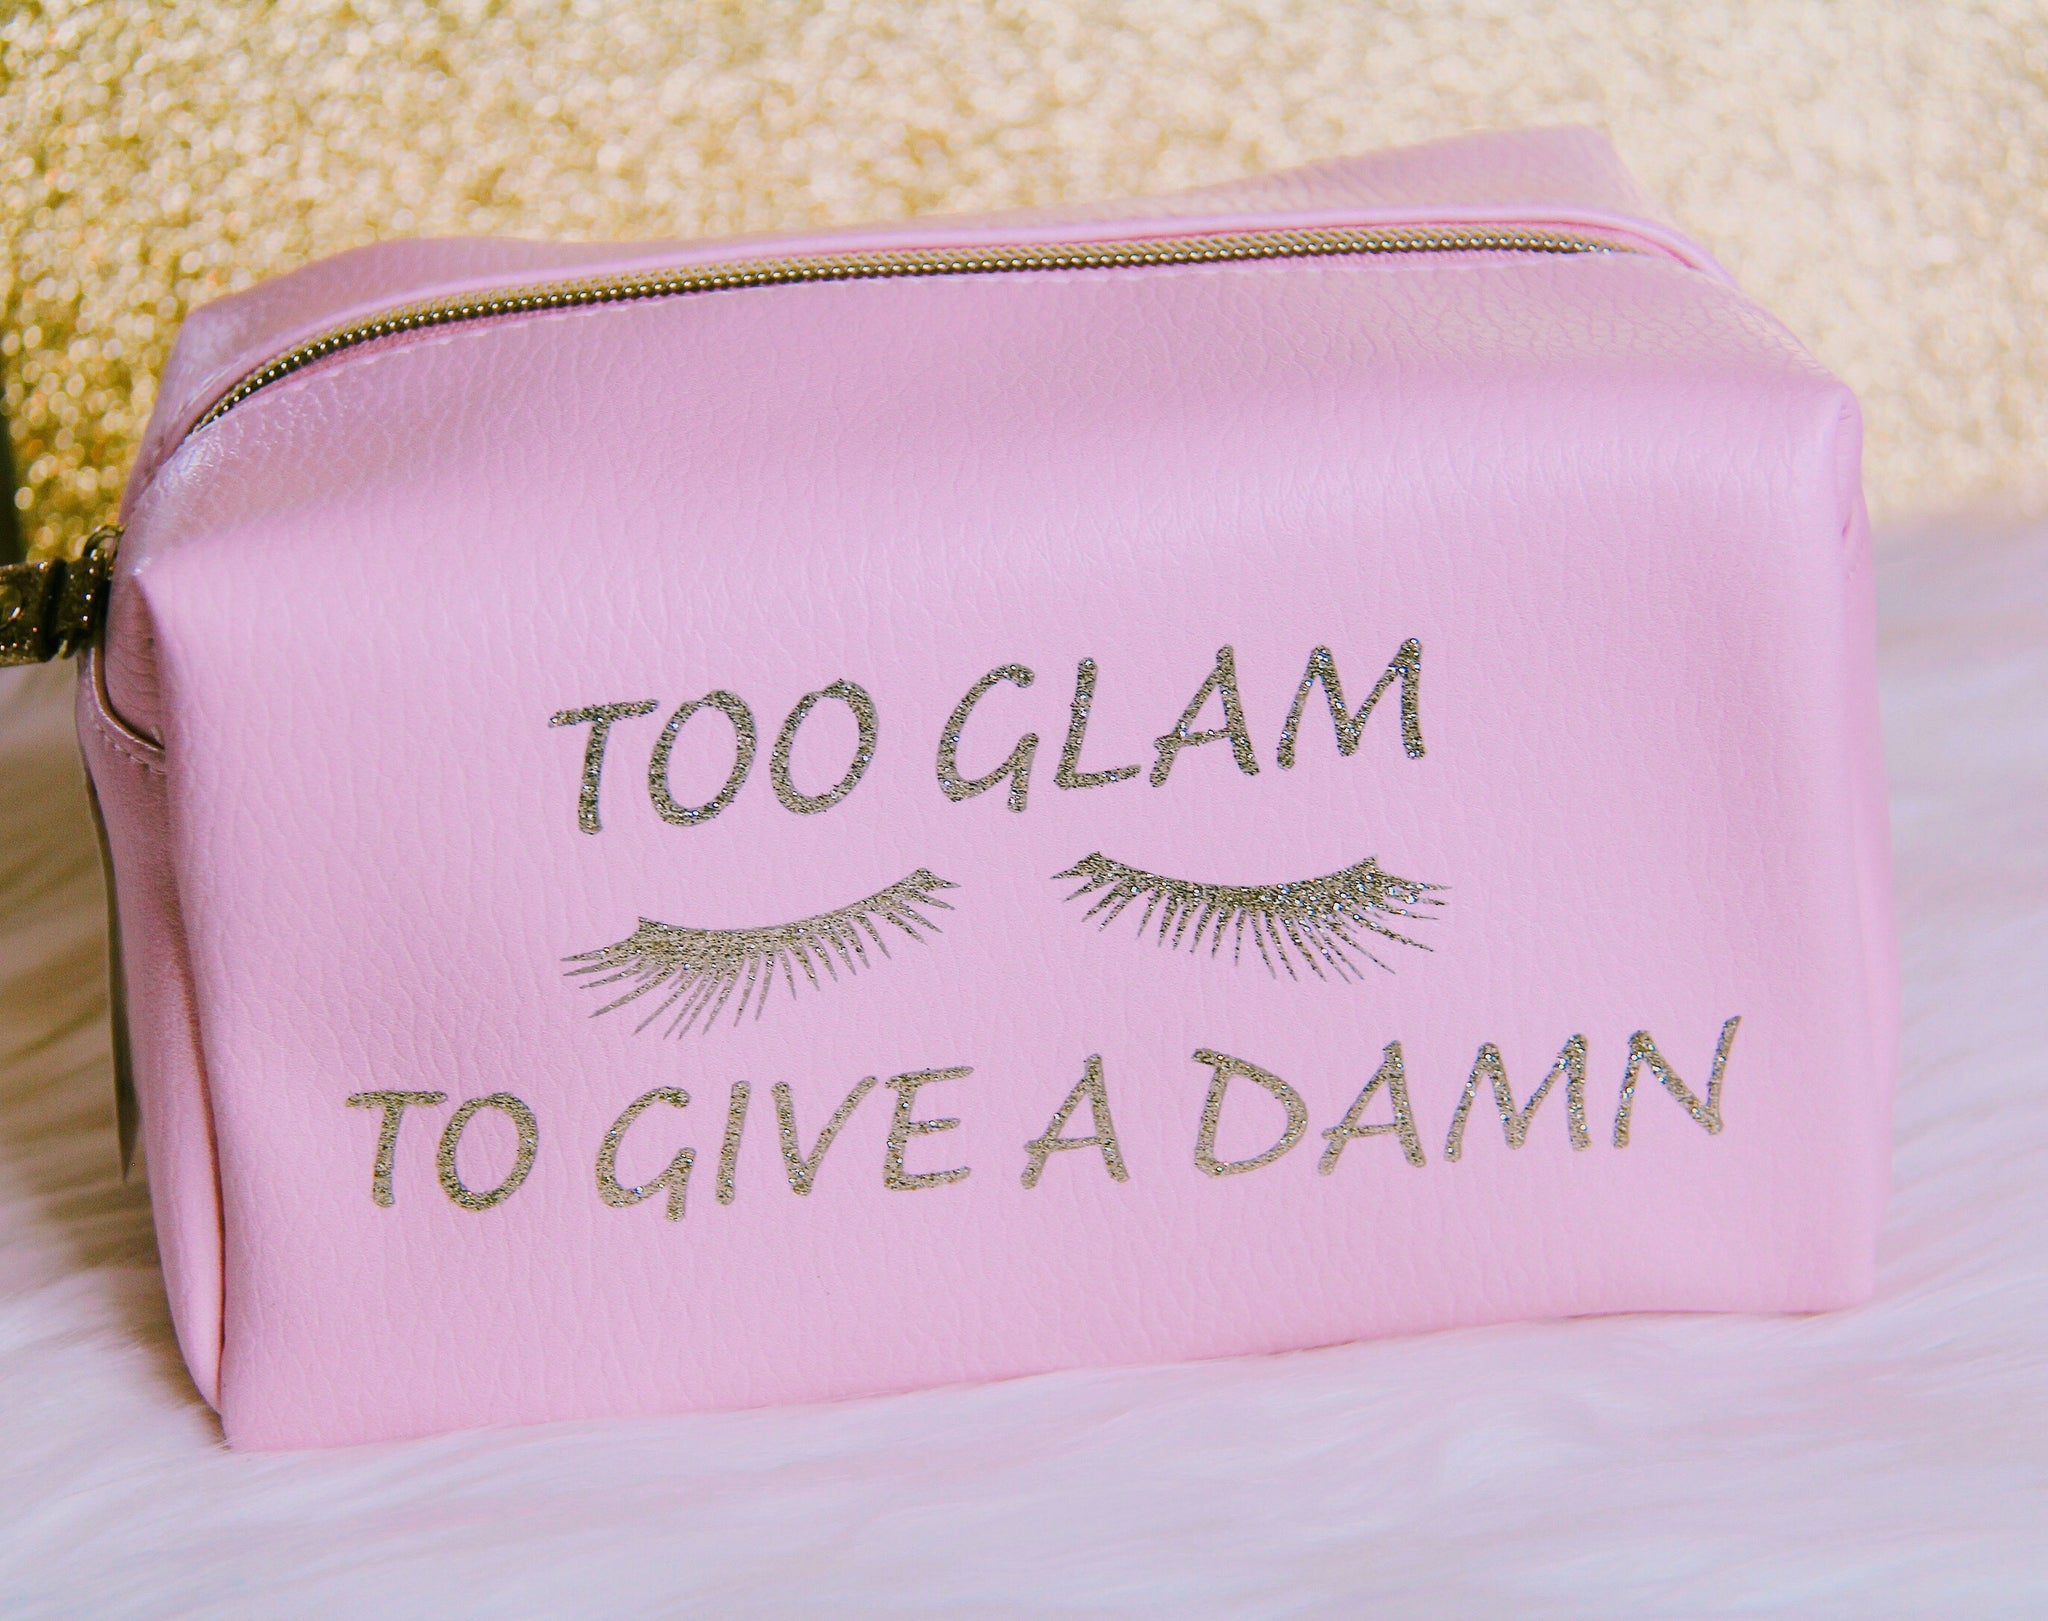 Too Glam light pink makeup bag